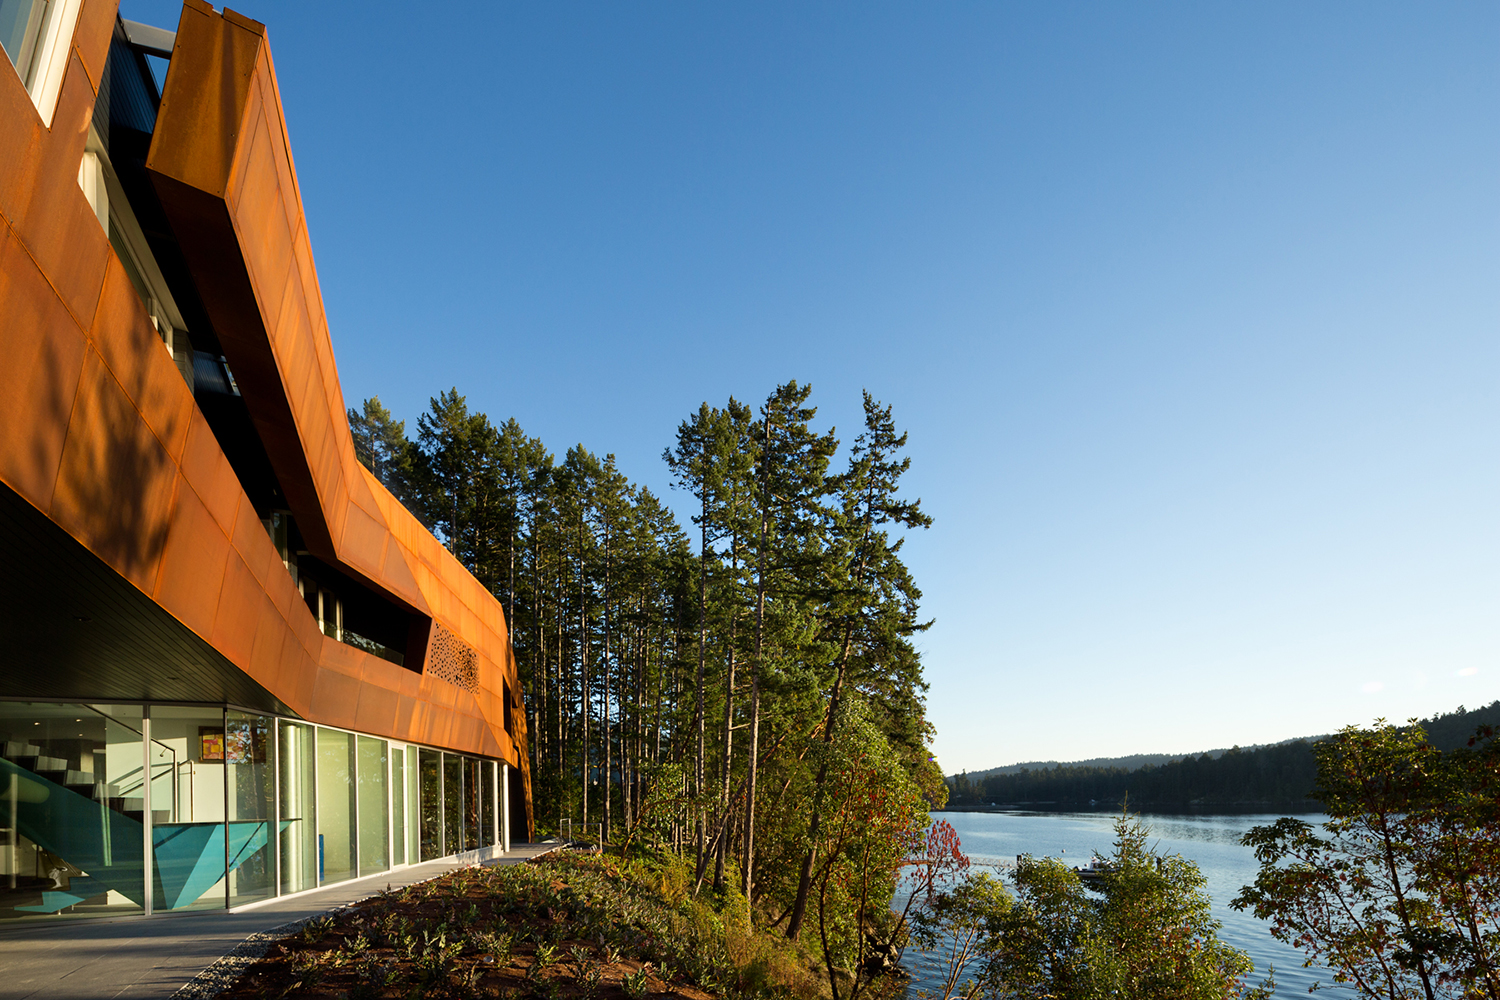 Gulf Islands Vancouver lake house